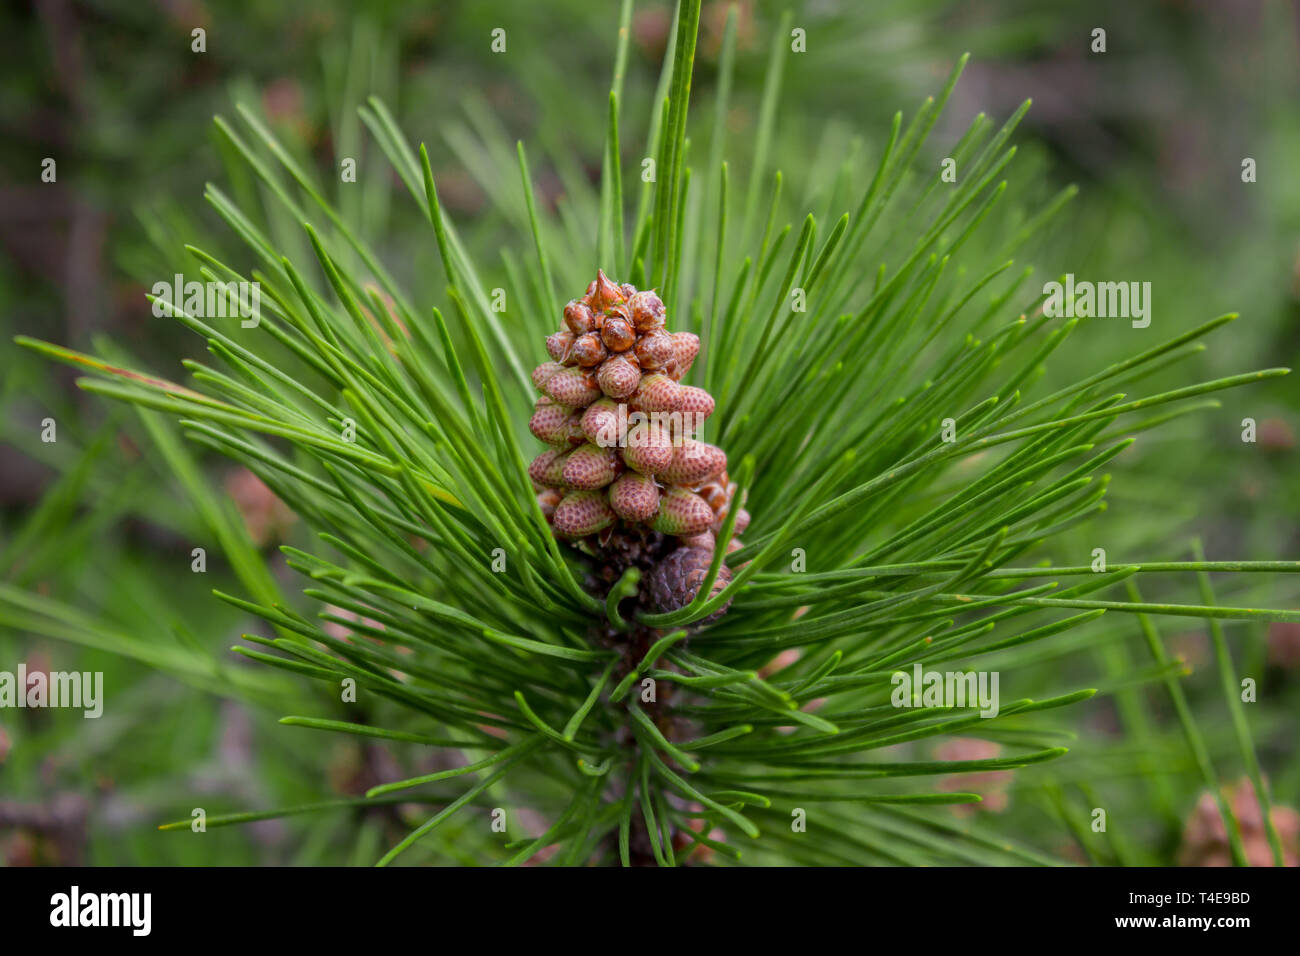 Is a species of pine that is native to Eurasia, ranging from Western Europe to Eastern Siberia, south to the Caucasus Mountains and Anatolia, and nort - Stock Image